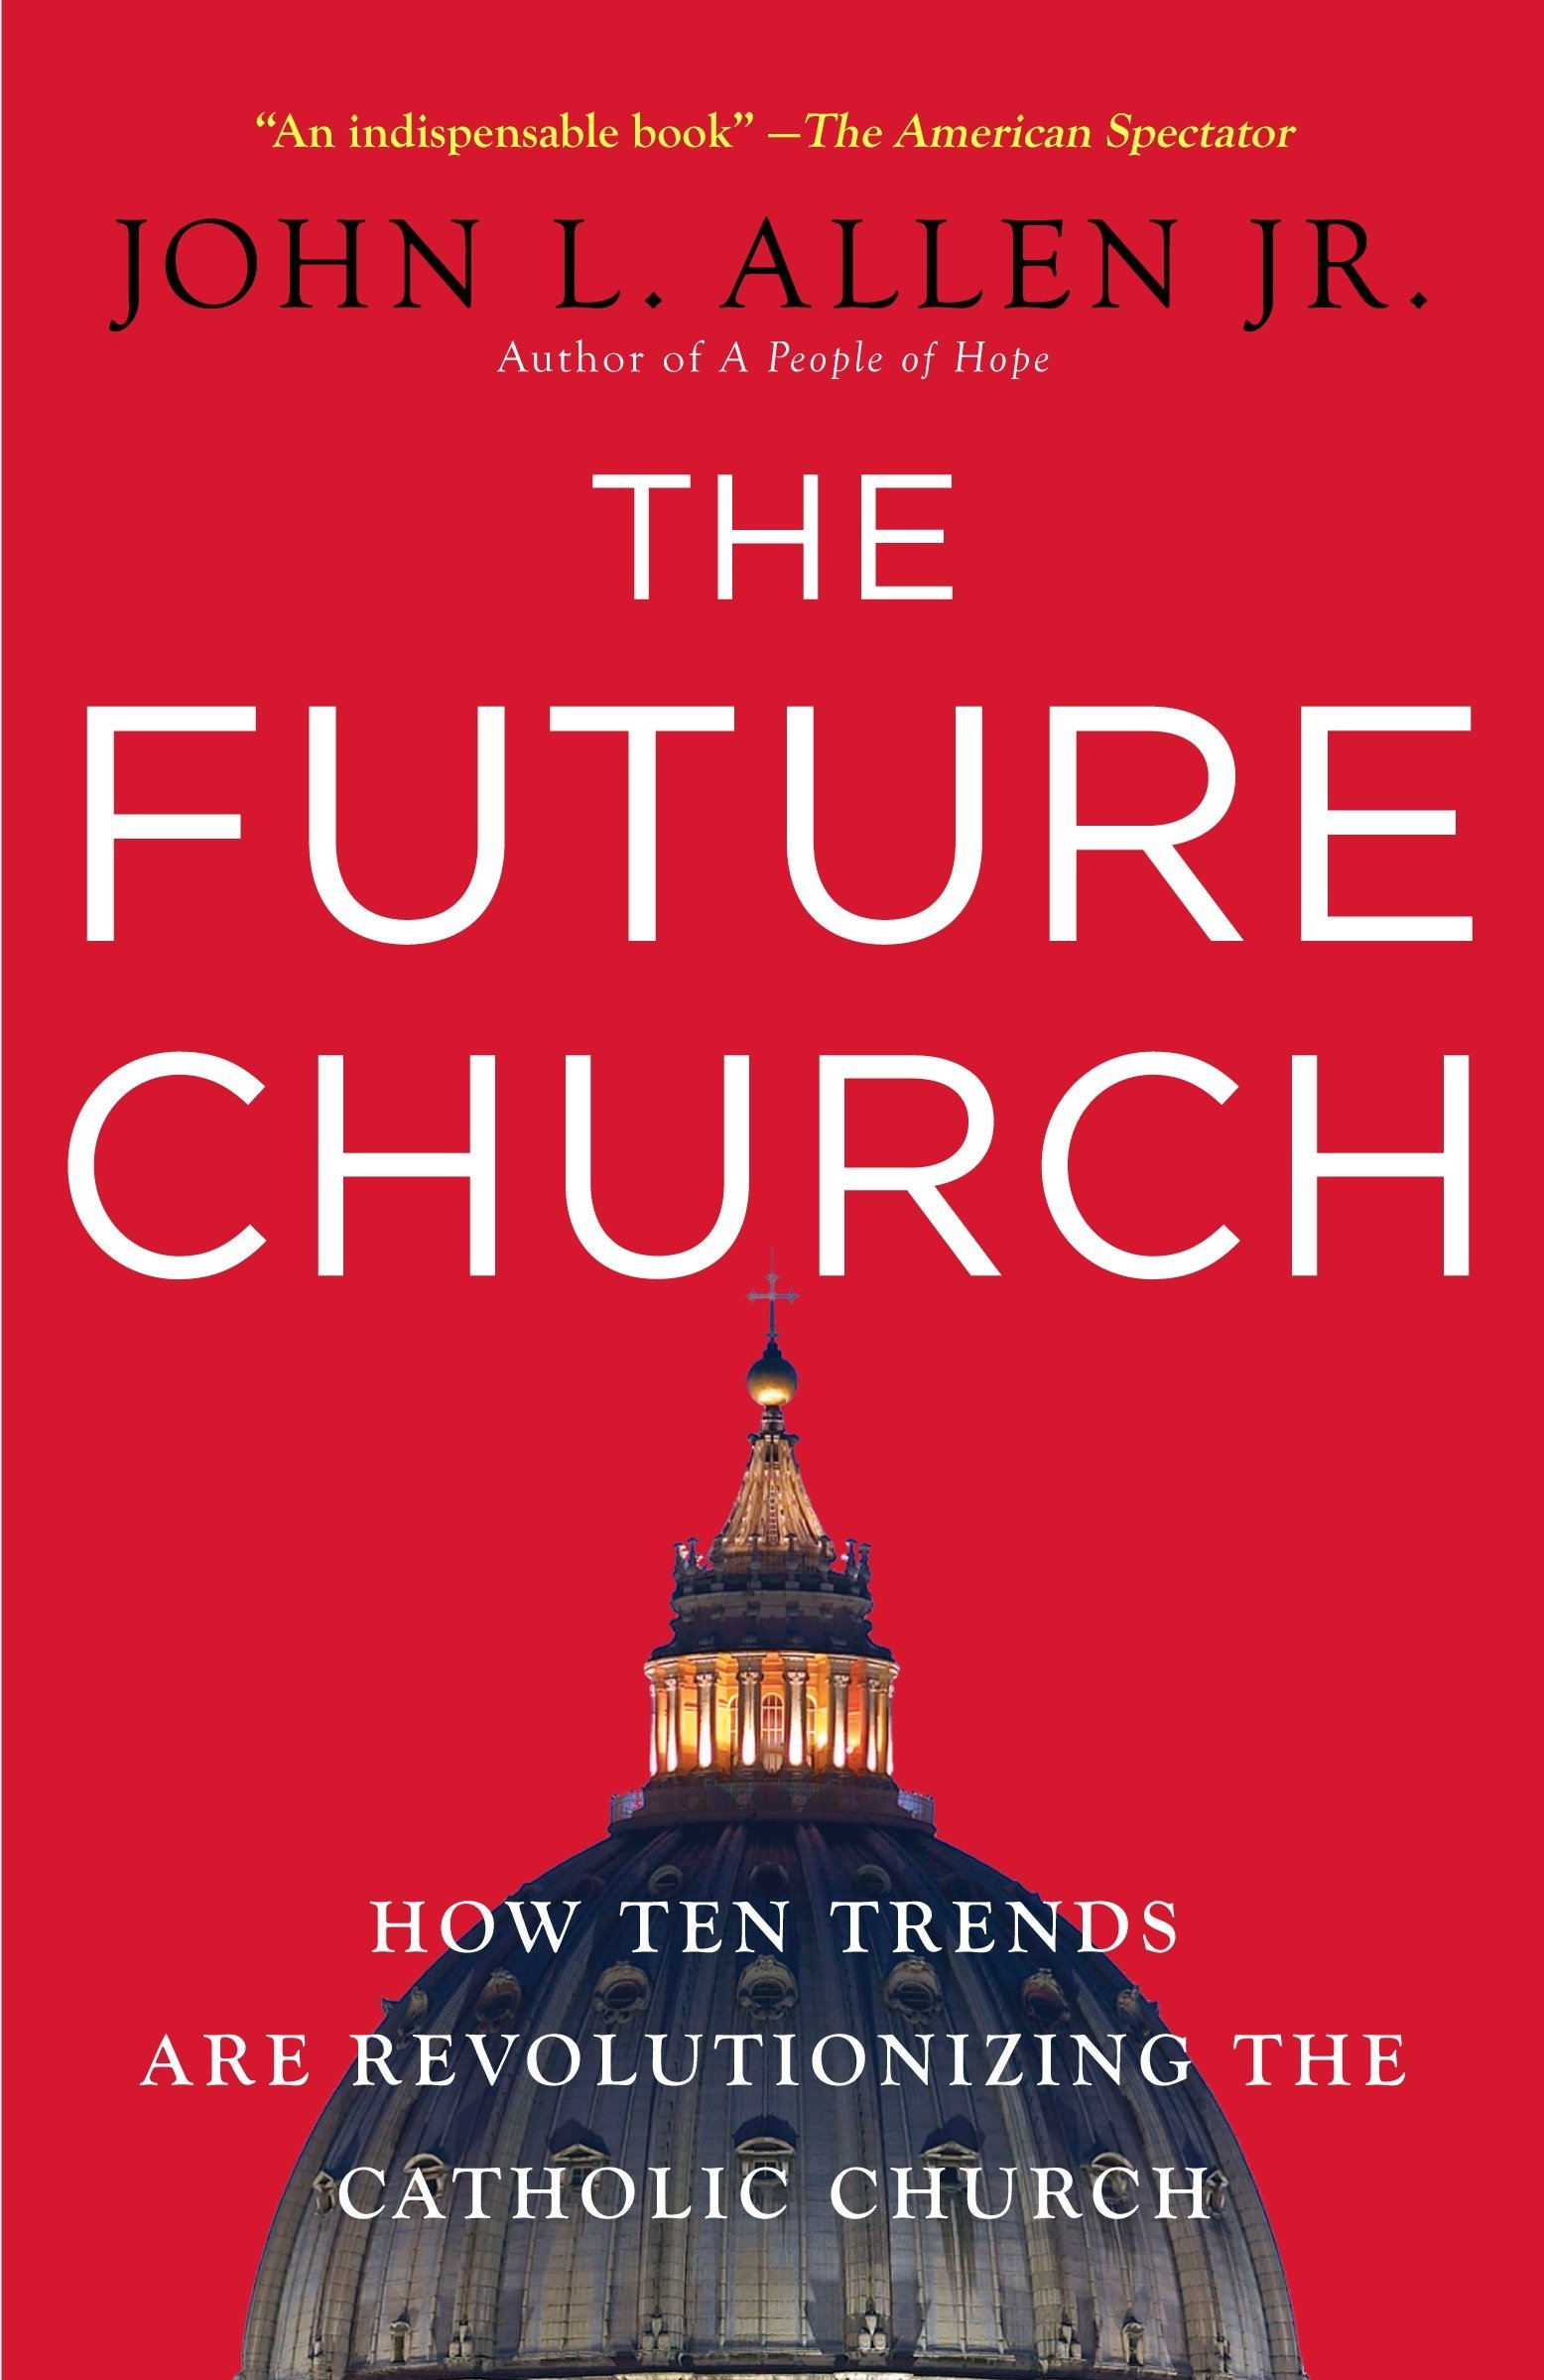 The Future Church: How Ten Trends Are Revolutionizing the Catholic